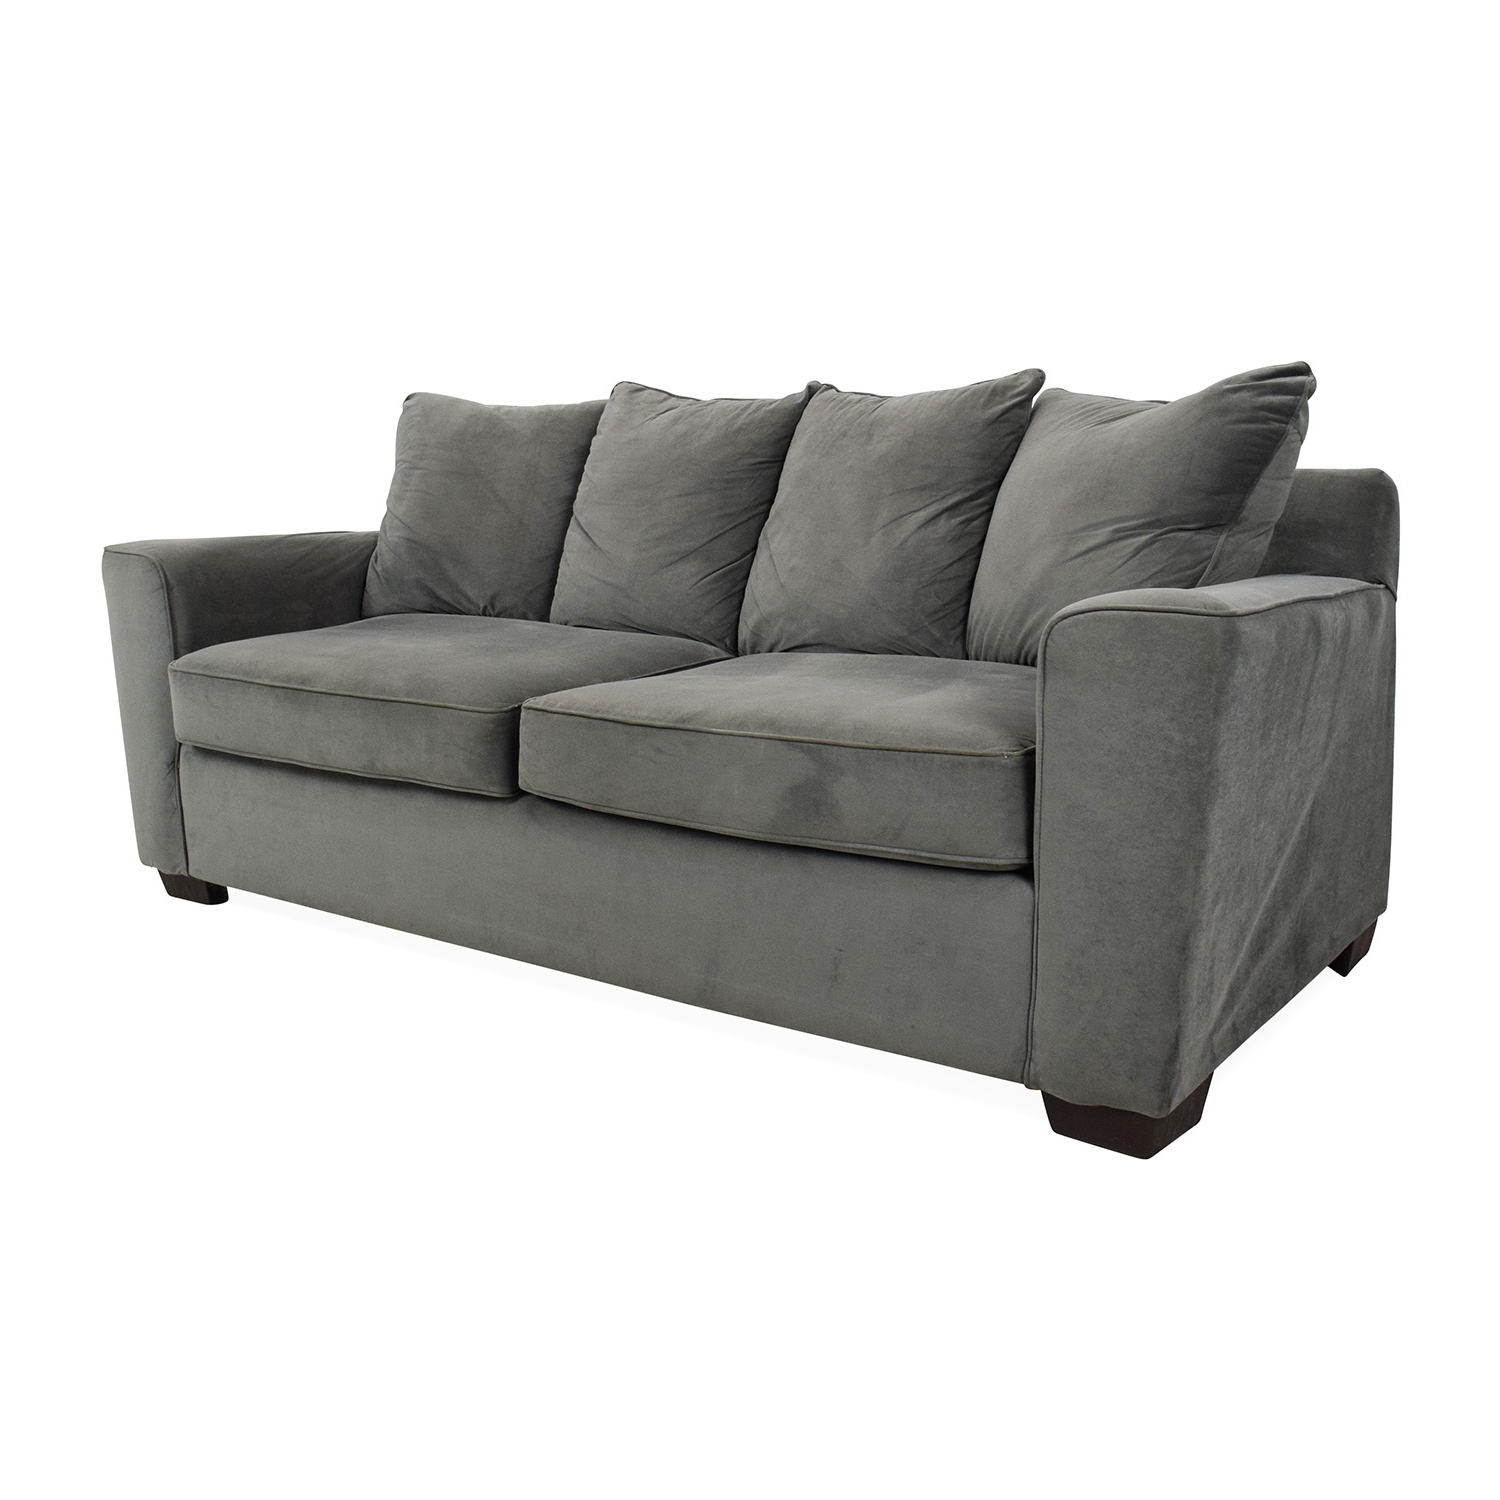 [%53% Off – Jennifer Convertibles Jennifer Convertibles Grey Couch For Well Liked Jennifer Sofas|jennifer Sofas For Fashionable 53% Off – Jennifer Convertibles Jennifer Convertibles Grey Couch|well Known Jennifer Sofas With Regard To 53% Off – Jennifer Convertibles Jennifer Convertibles Grey Couch|well Liked 53% Off – Jennifer Convertibles Jennifer Convertibles Grey Couch Regarding Jennifer Sofas%] (View 12 of 20)